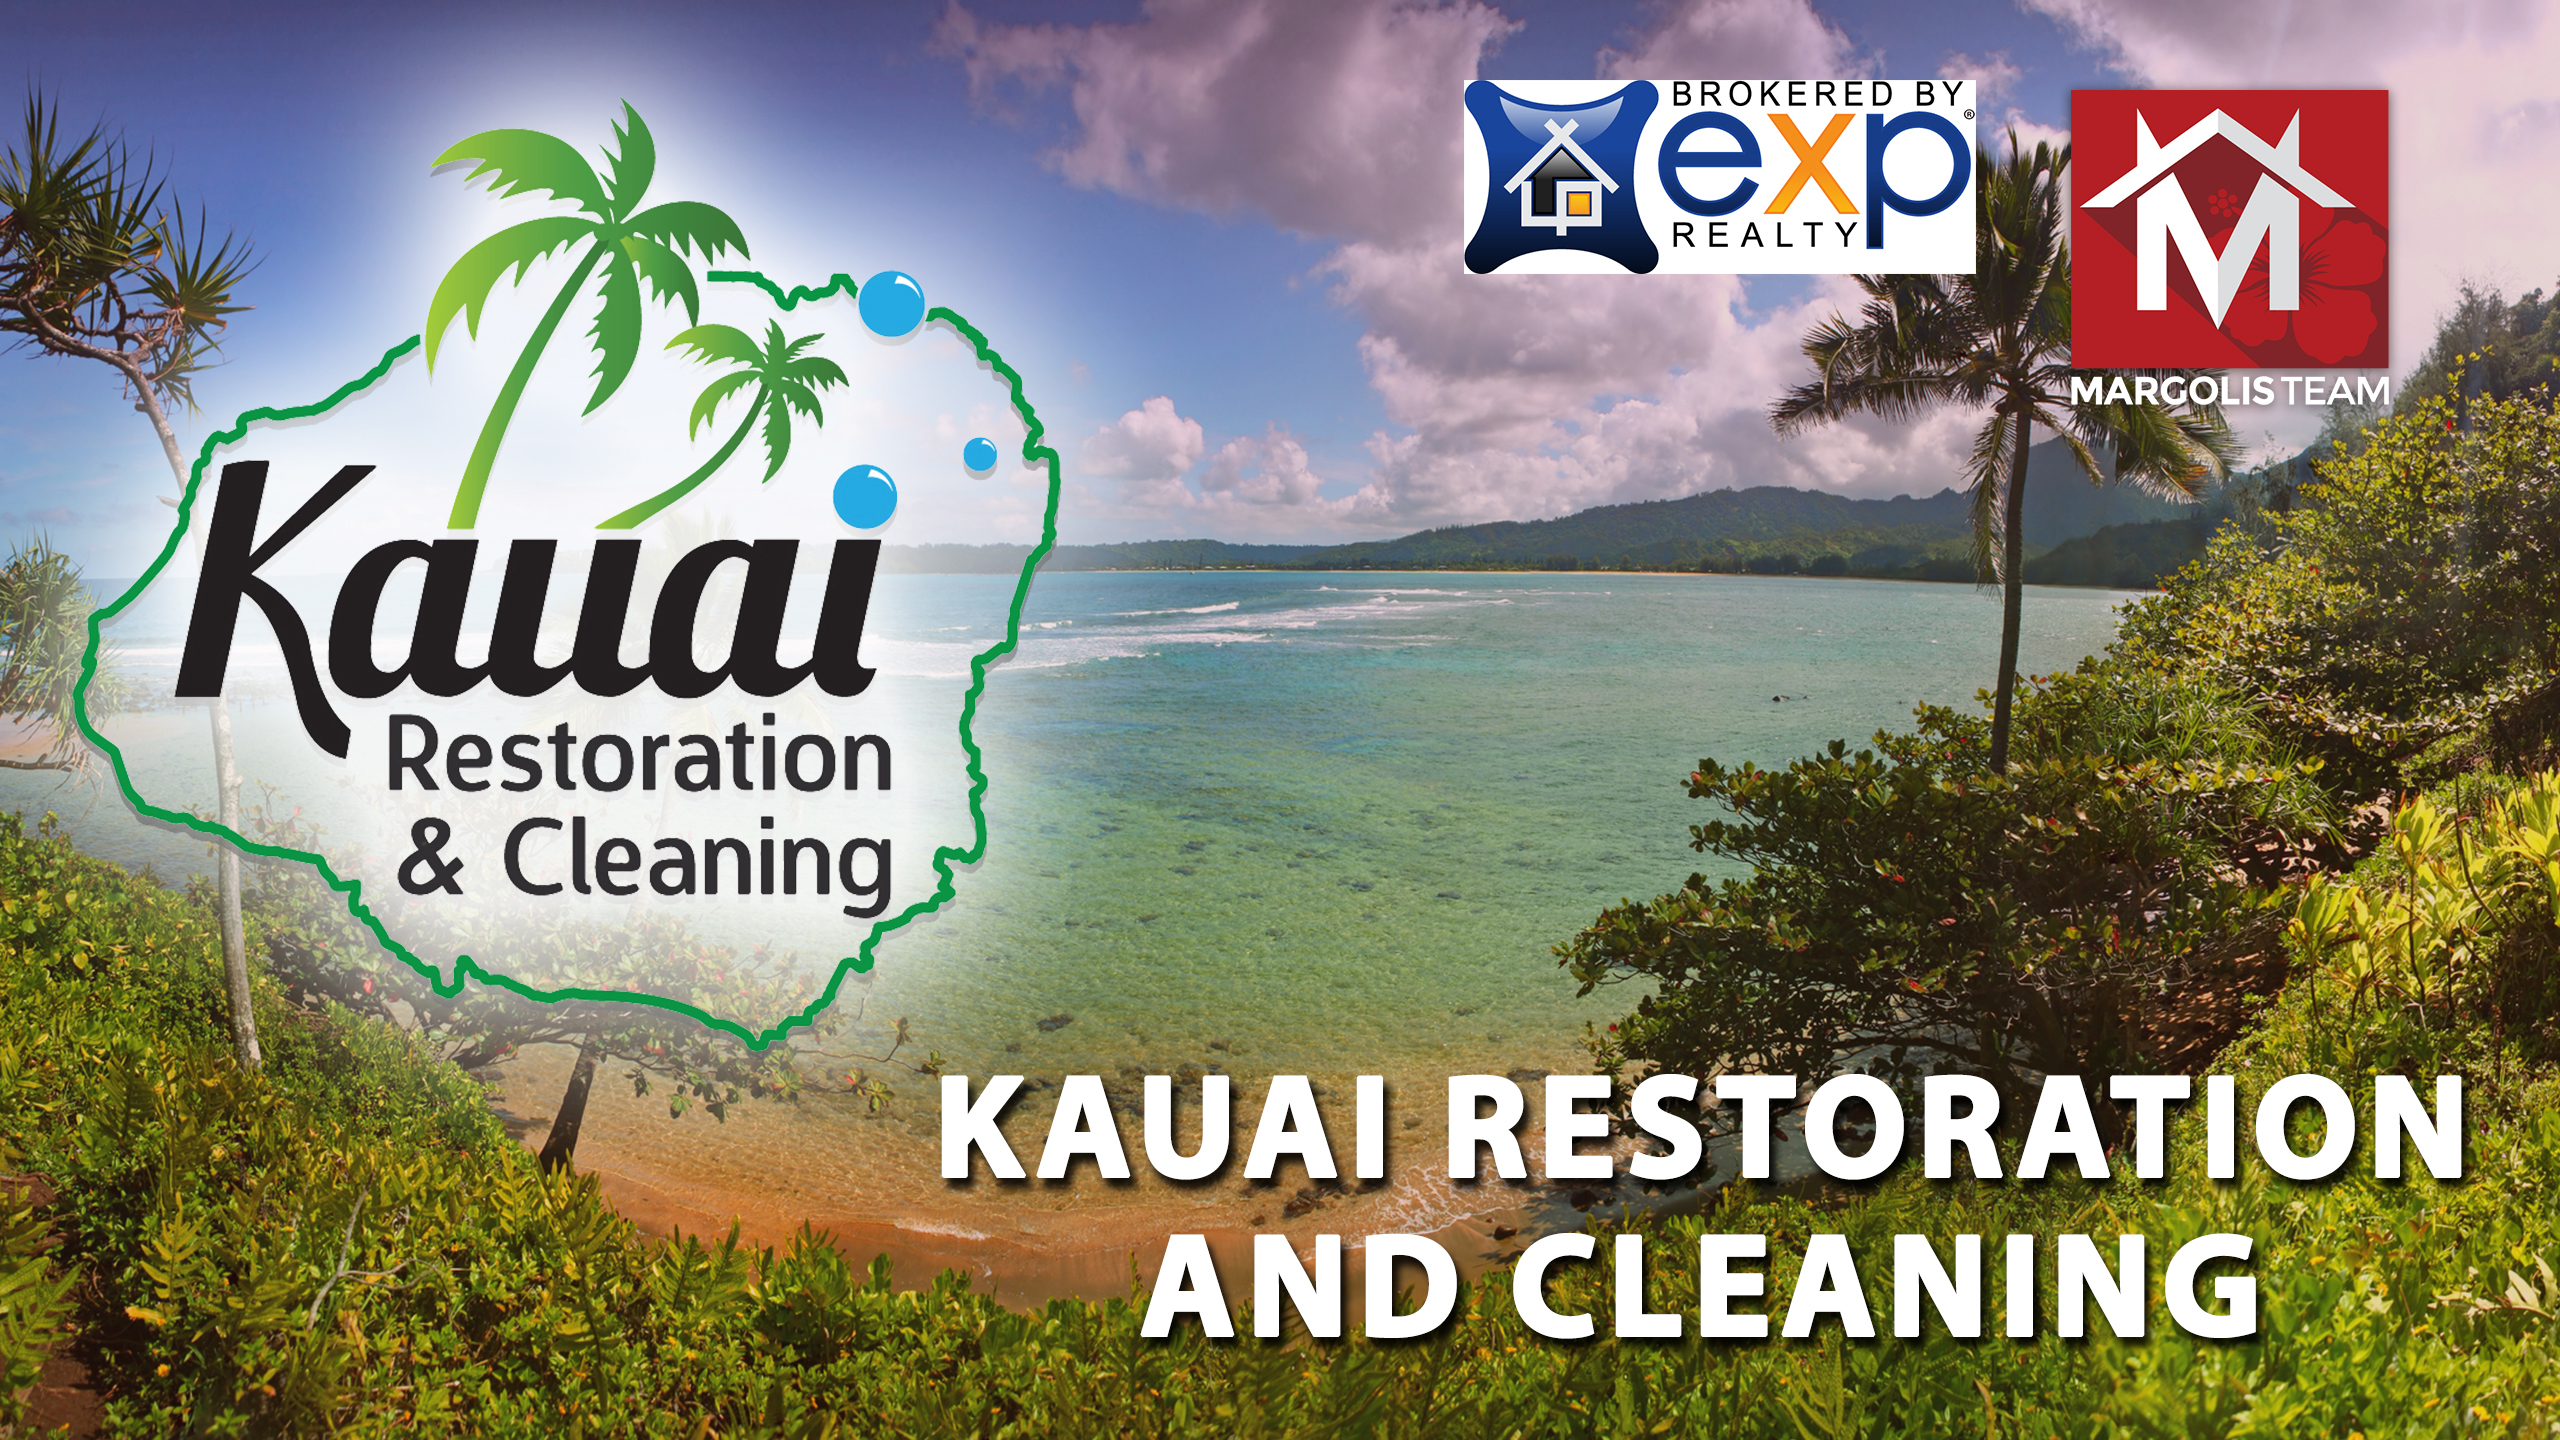 My Latest Vendor Spotlight, Featuring Kauai Restoration & Cleaning